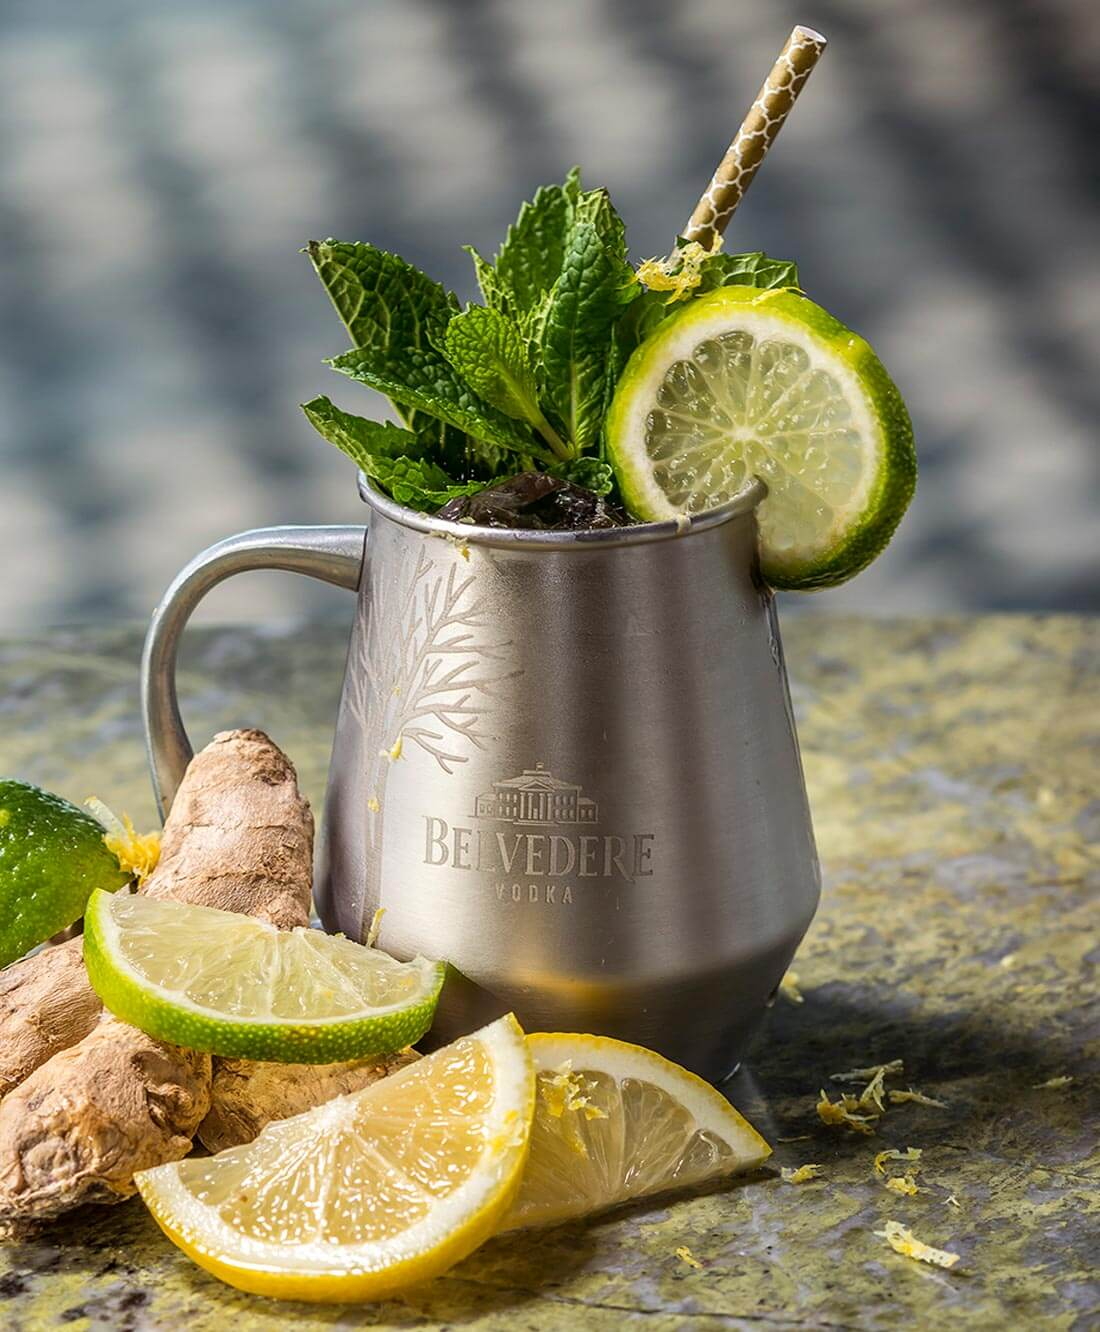 Polish Mule, cocktail and garnish in mule glass